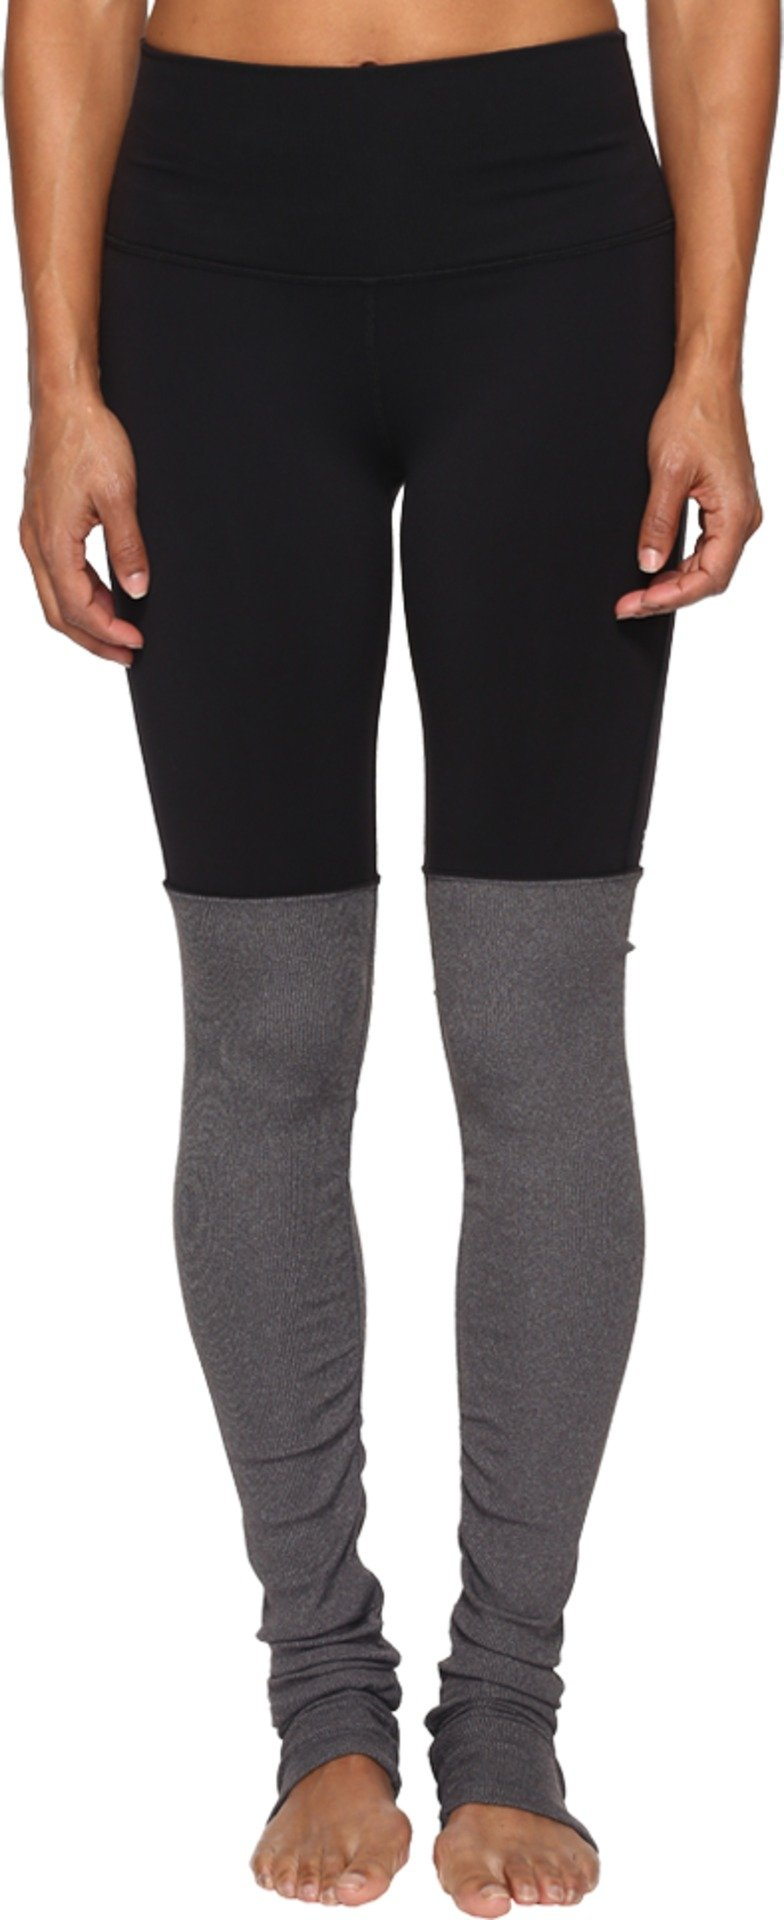 ALO Women's High Waisted Goddess Leggings Black/Stormy Heather X-Small 33 by ALO Sport (Image #1)